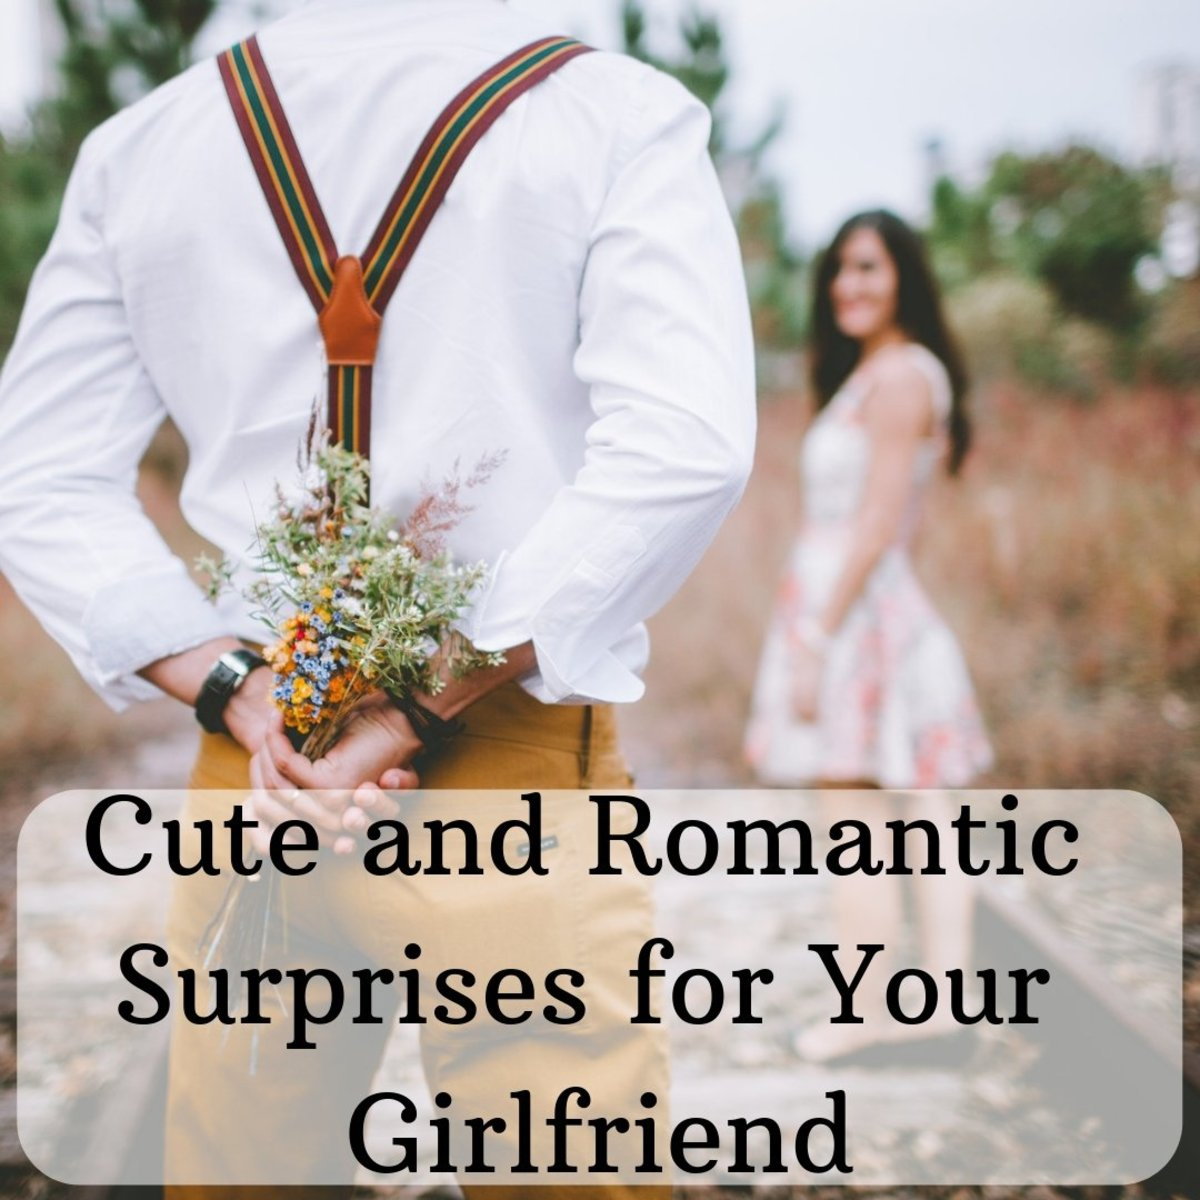 Here are some great surprises for your girlfriend that she will truly enjoy.